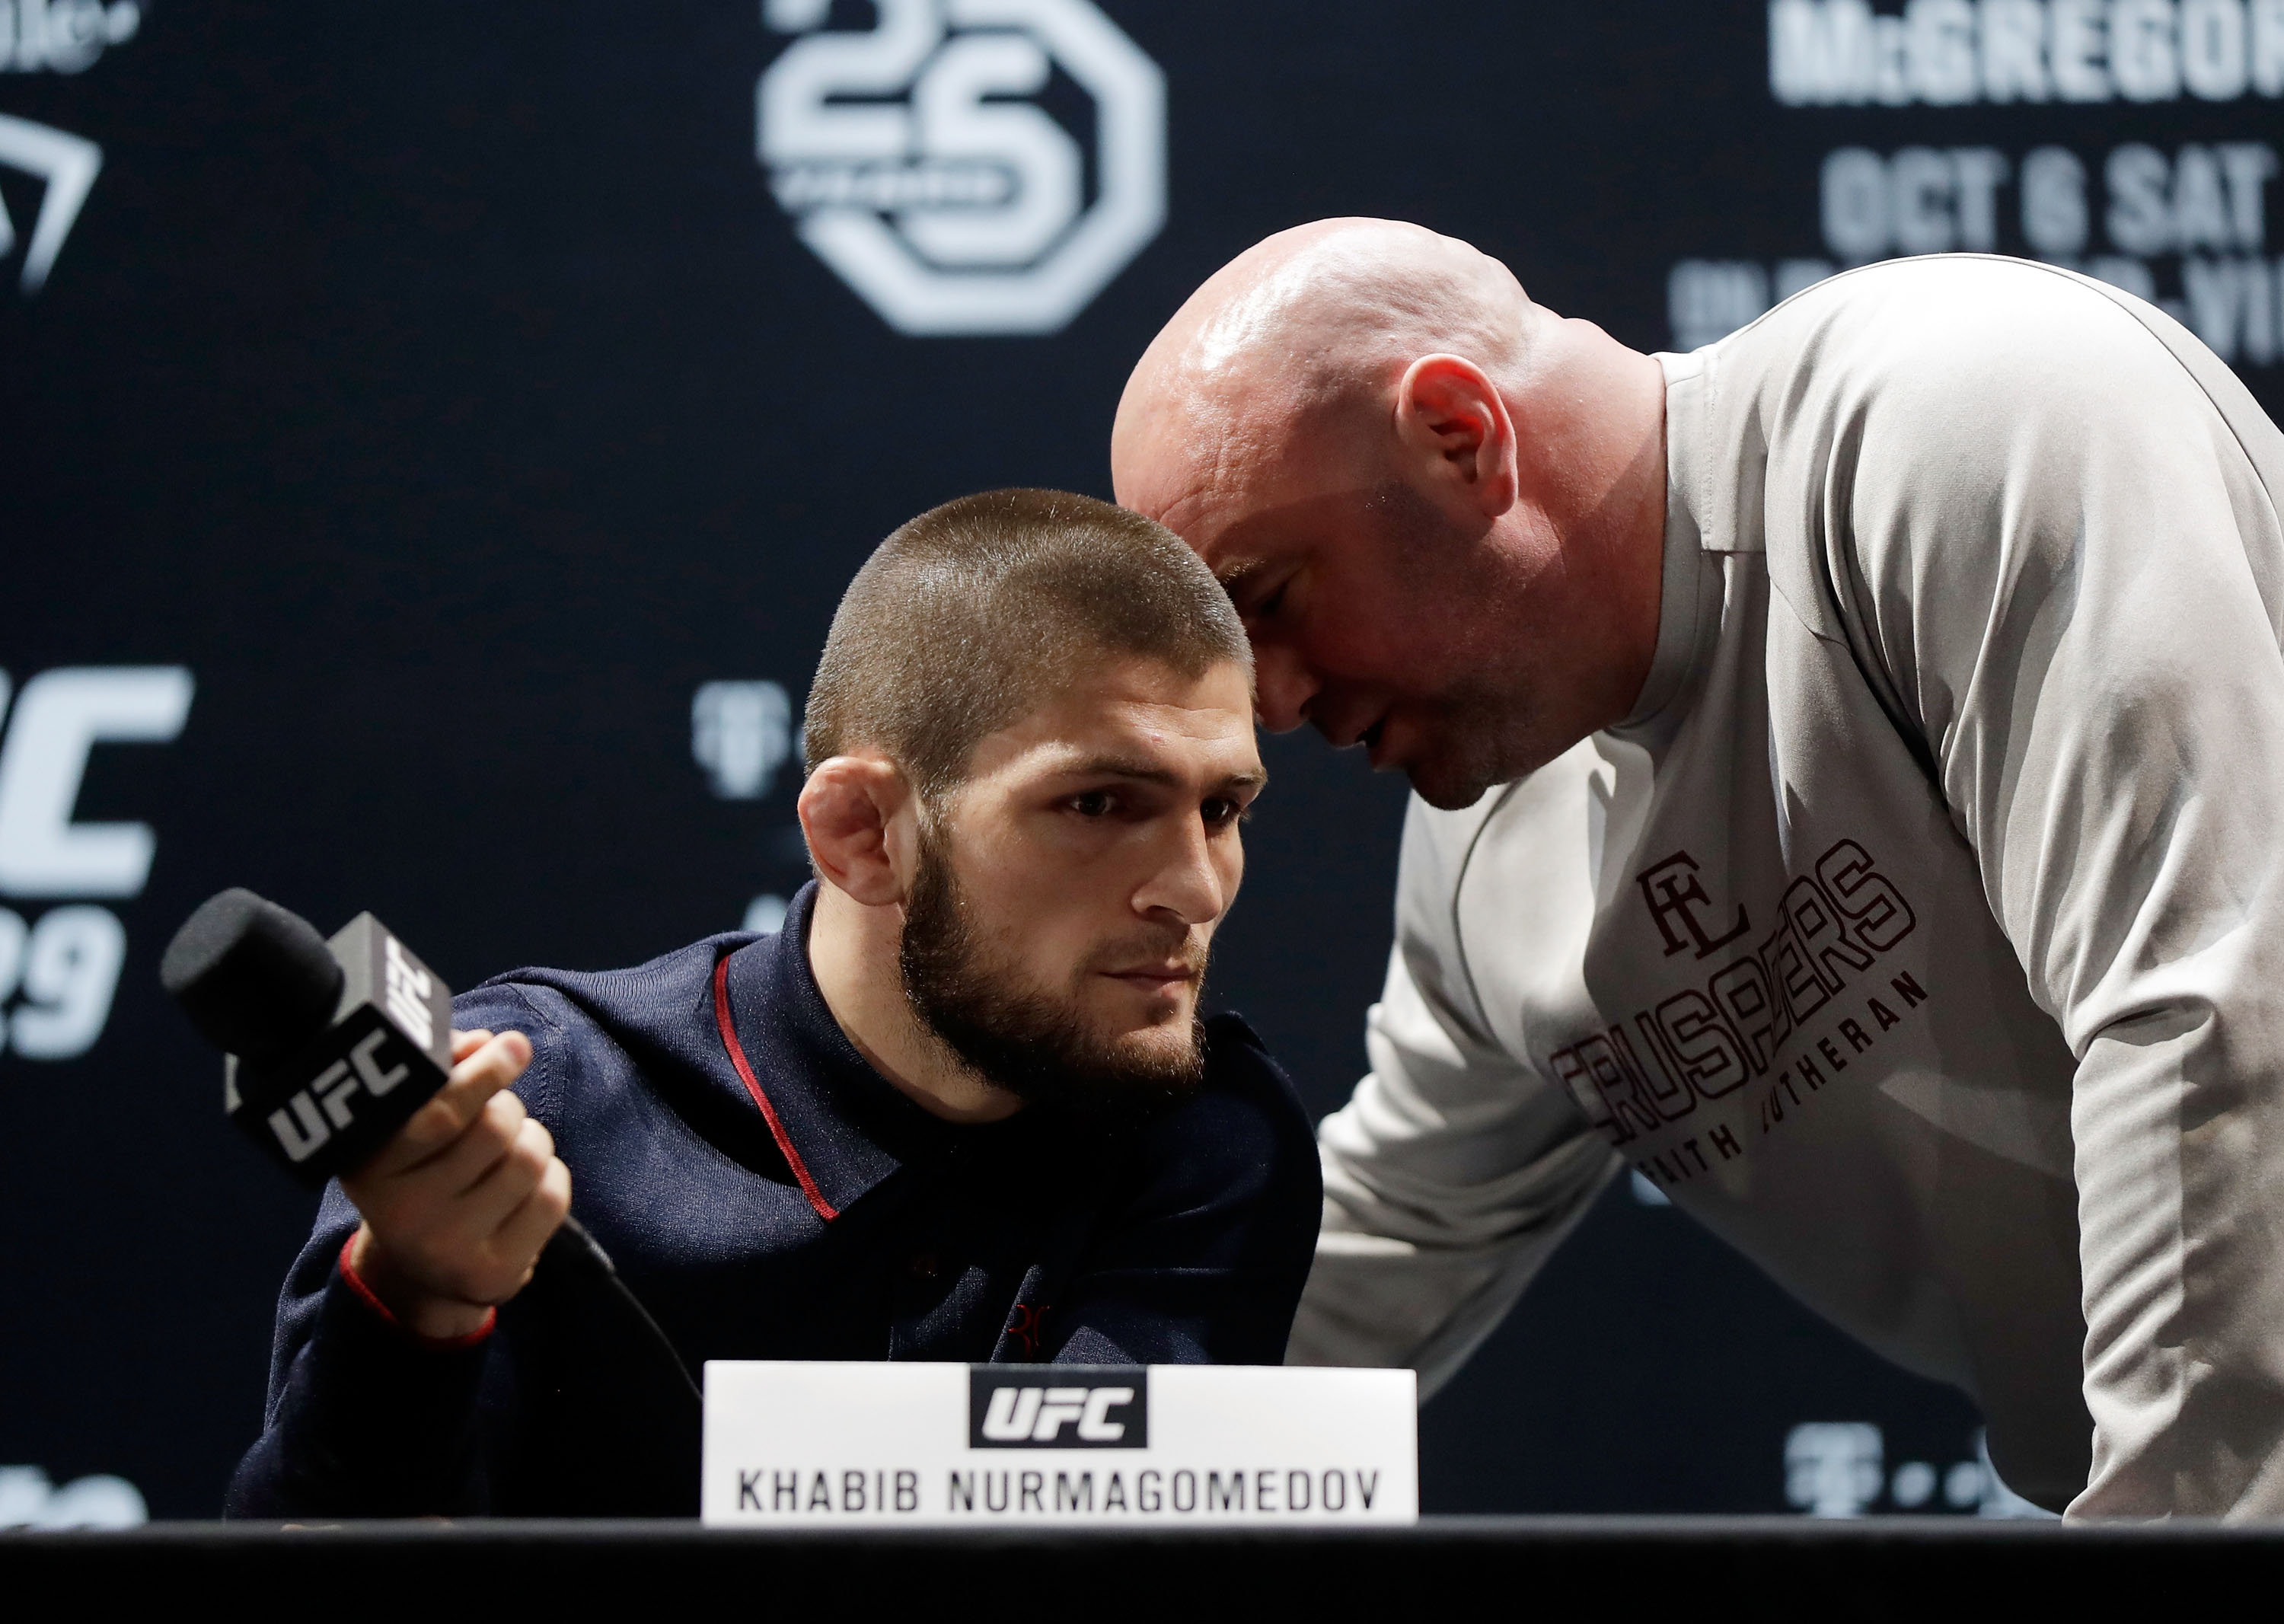 Dana White confirms Khabib Nurmagomedov out of UFC 249 and fight with Tony Ferguson